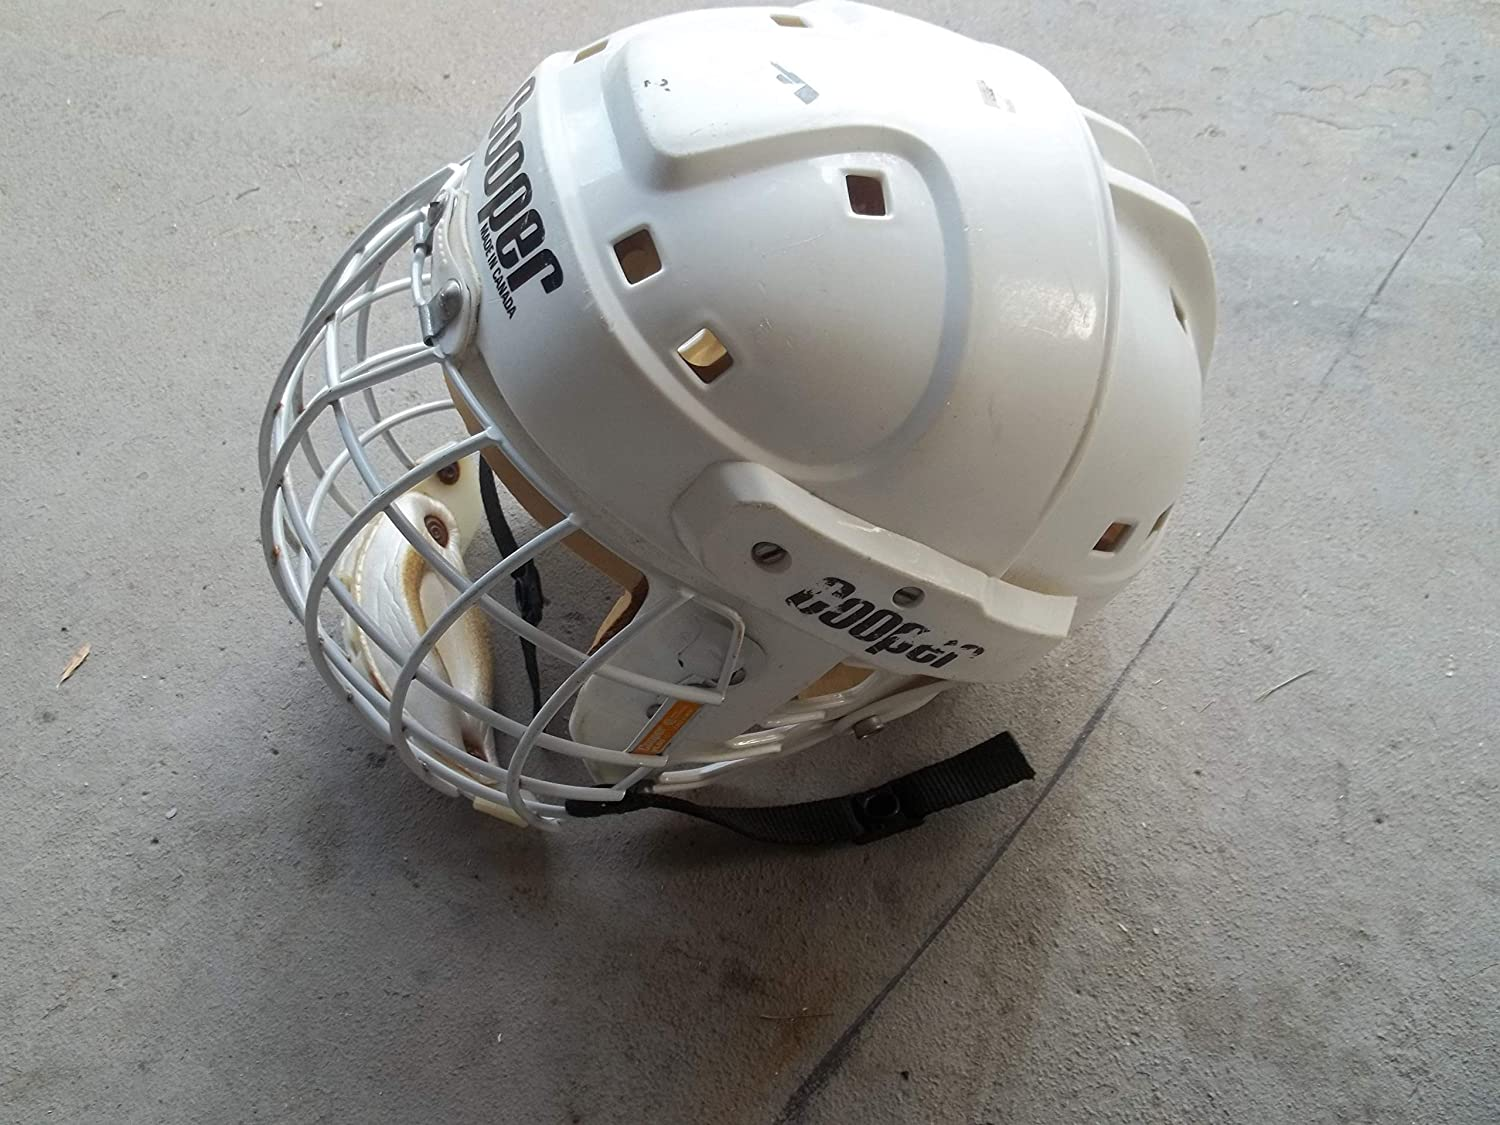 Cooper Ice Hockey Helmet with full face cage - Size (adult/teen) - Very Good Structual Condition